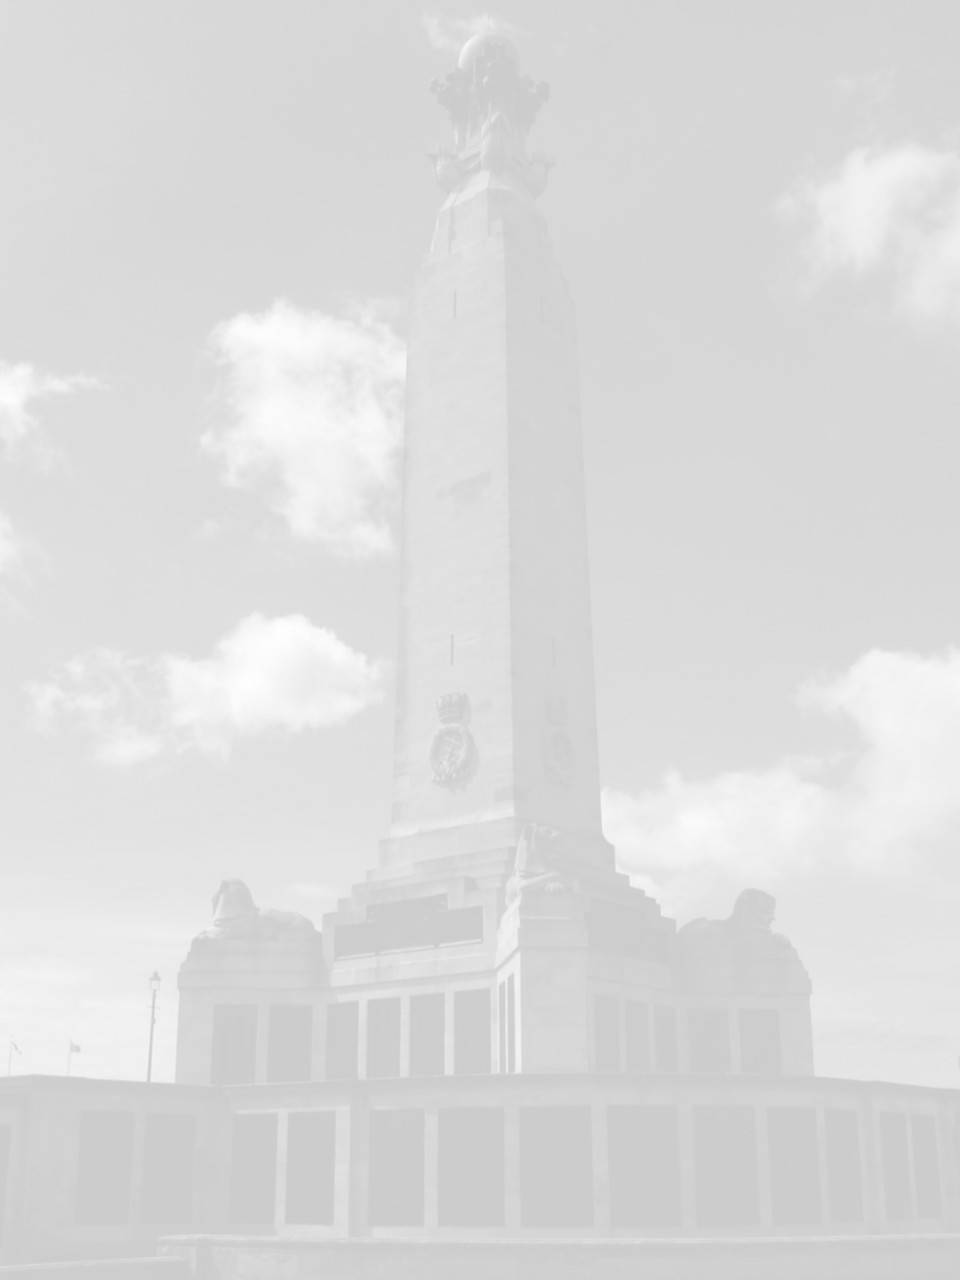 seo plymouth image of plymouth navy memorial